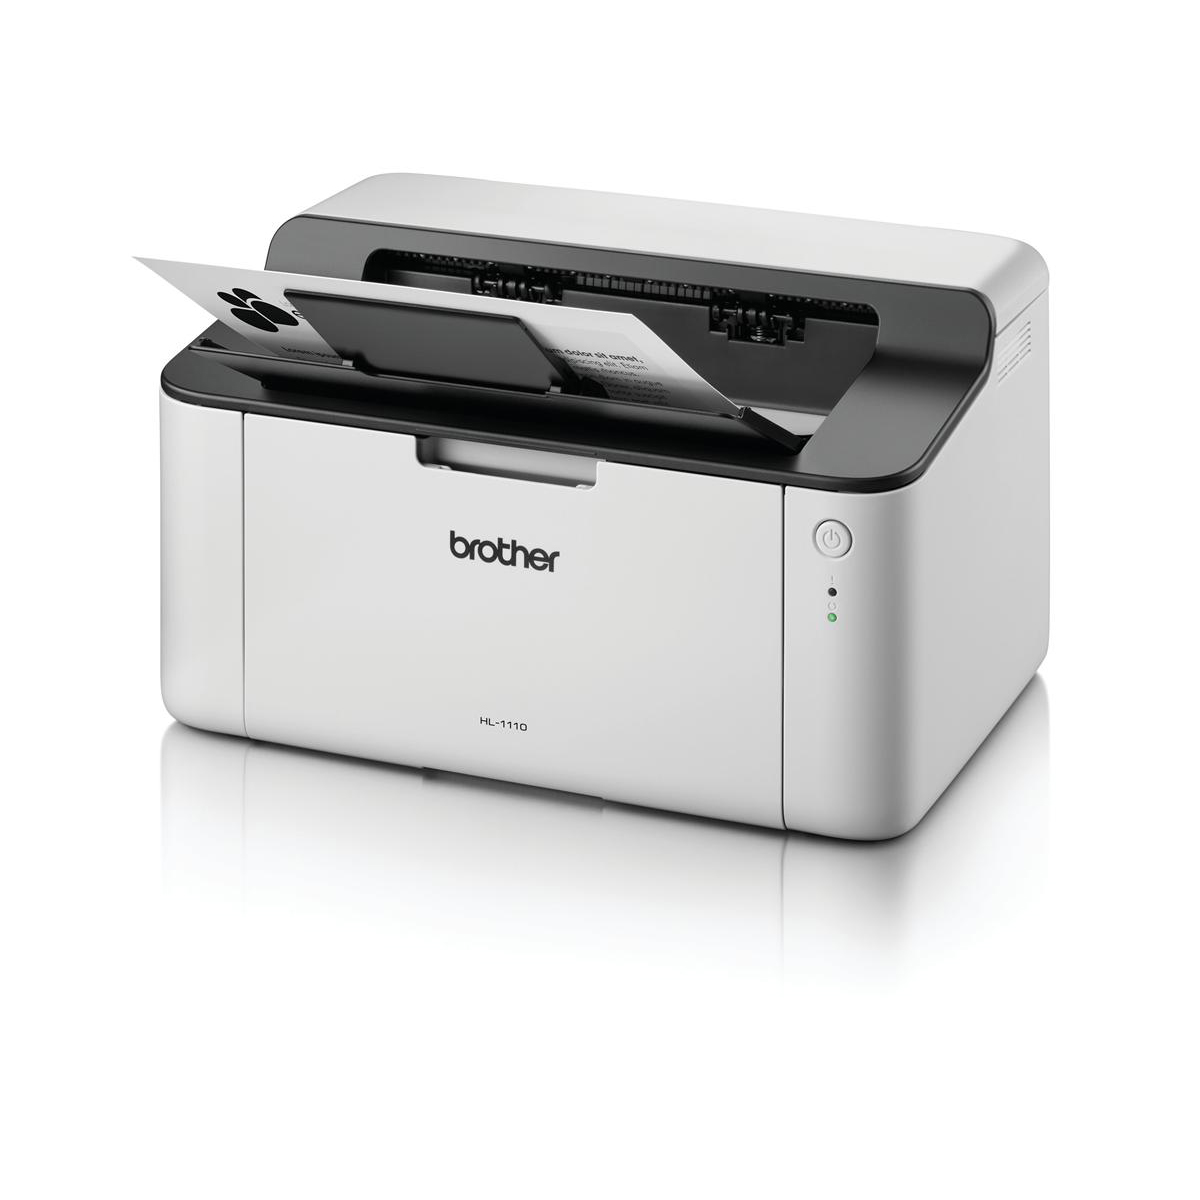 Image for Brother HL-1110 Mono A4 Laser Printer Ref HL1110ZU1